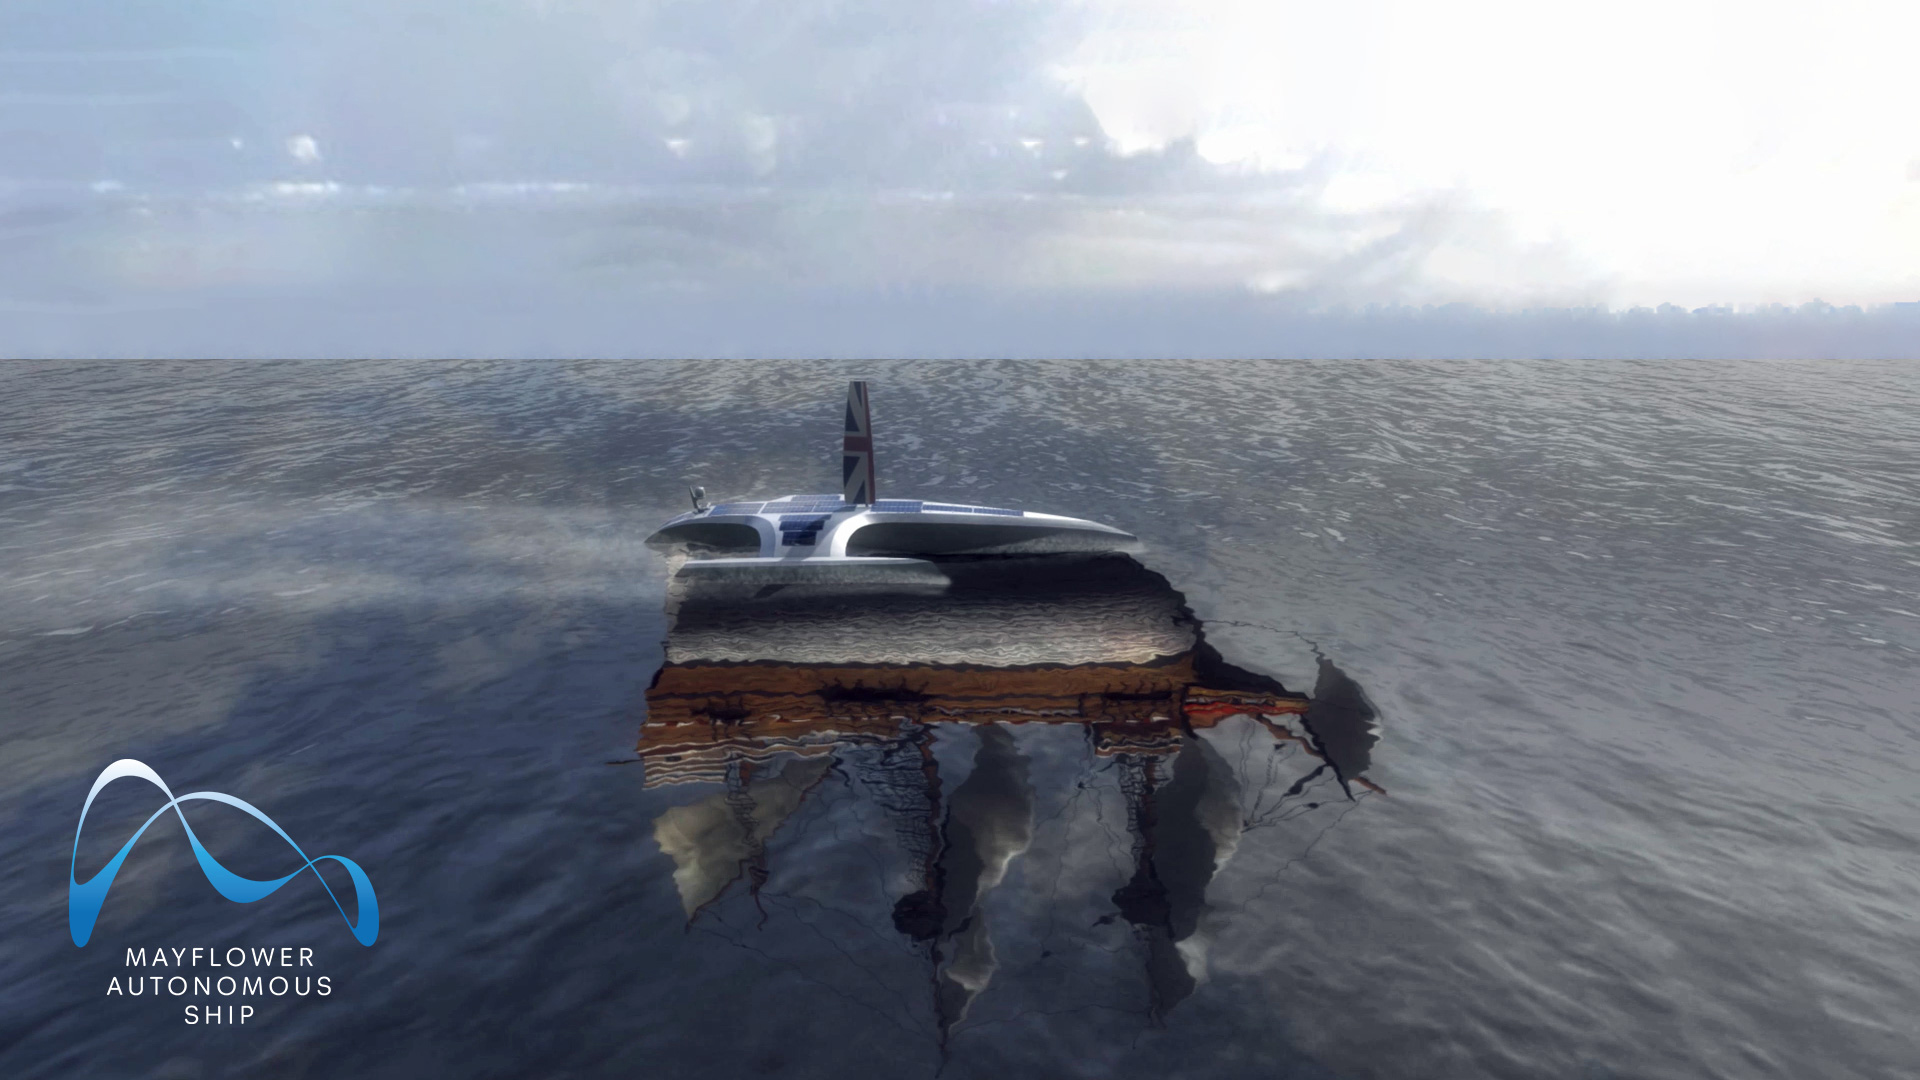 CGI visualization of the Mayflower Autonomous Ship at sea with a reflection of the original Mayflower, inspiration for the project.  Credits: University of Birmingham's Human Interface Technologies Team (HIT)